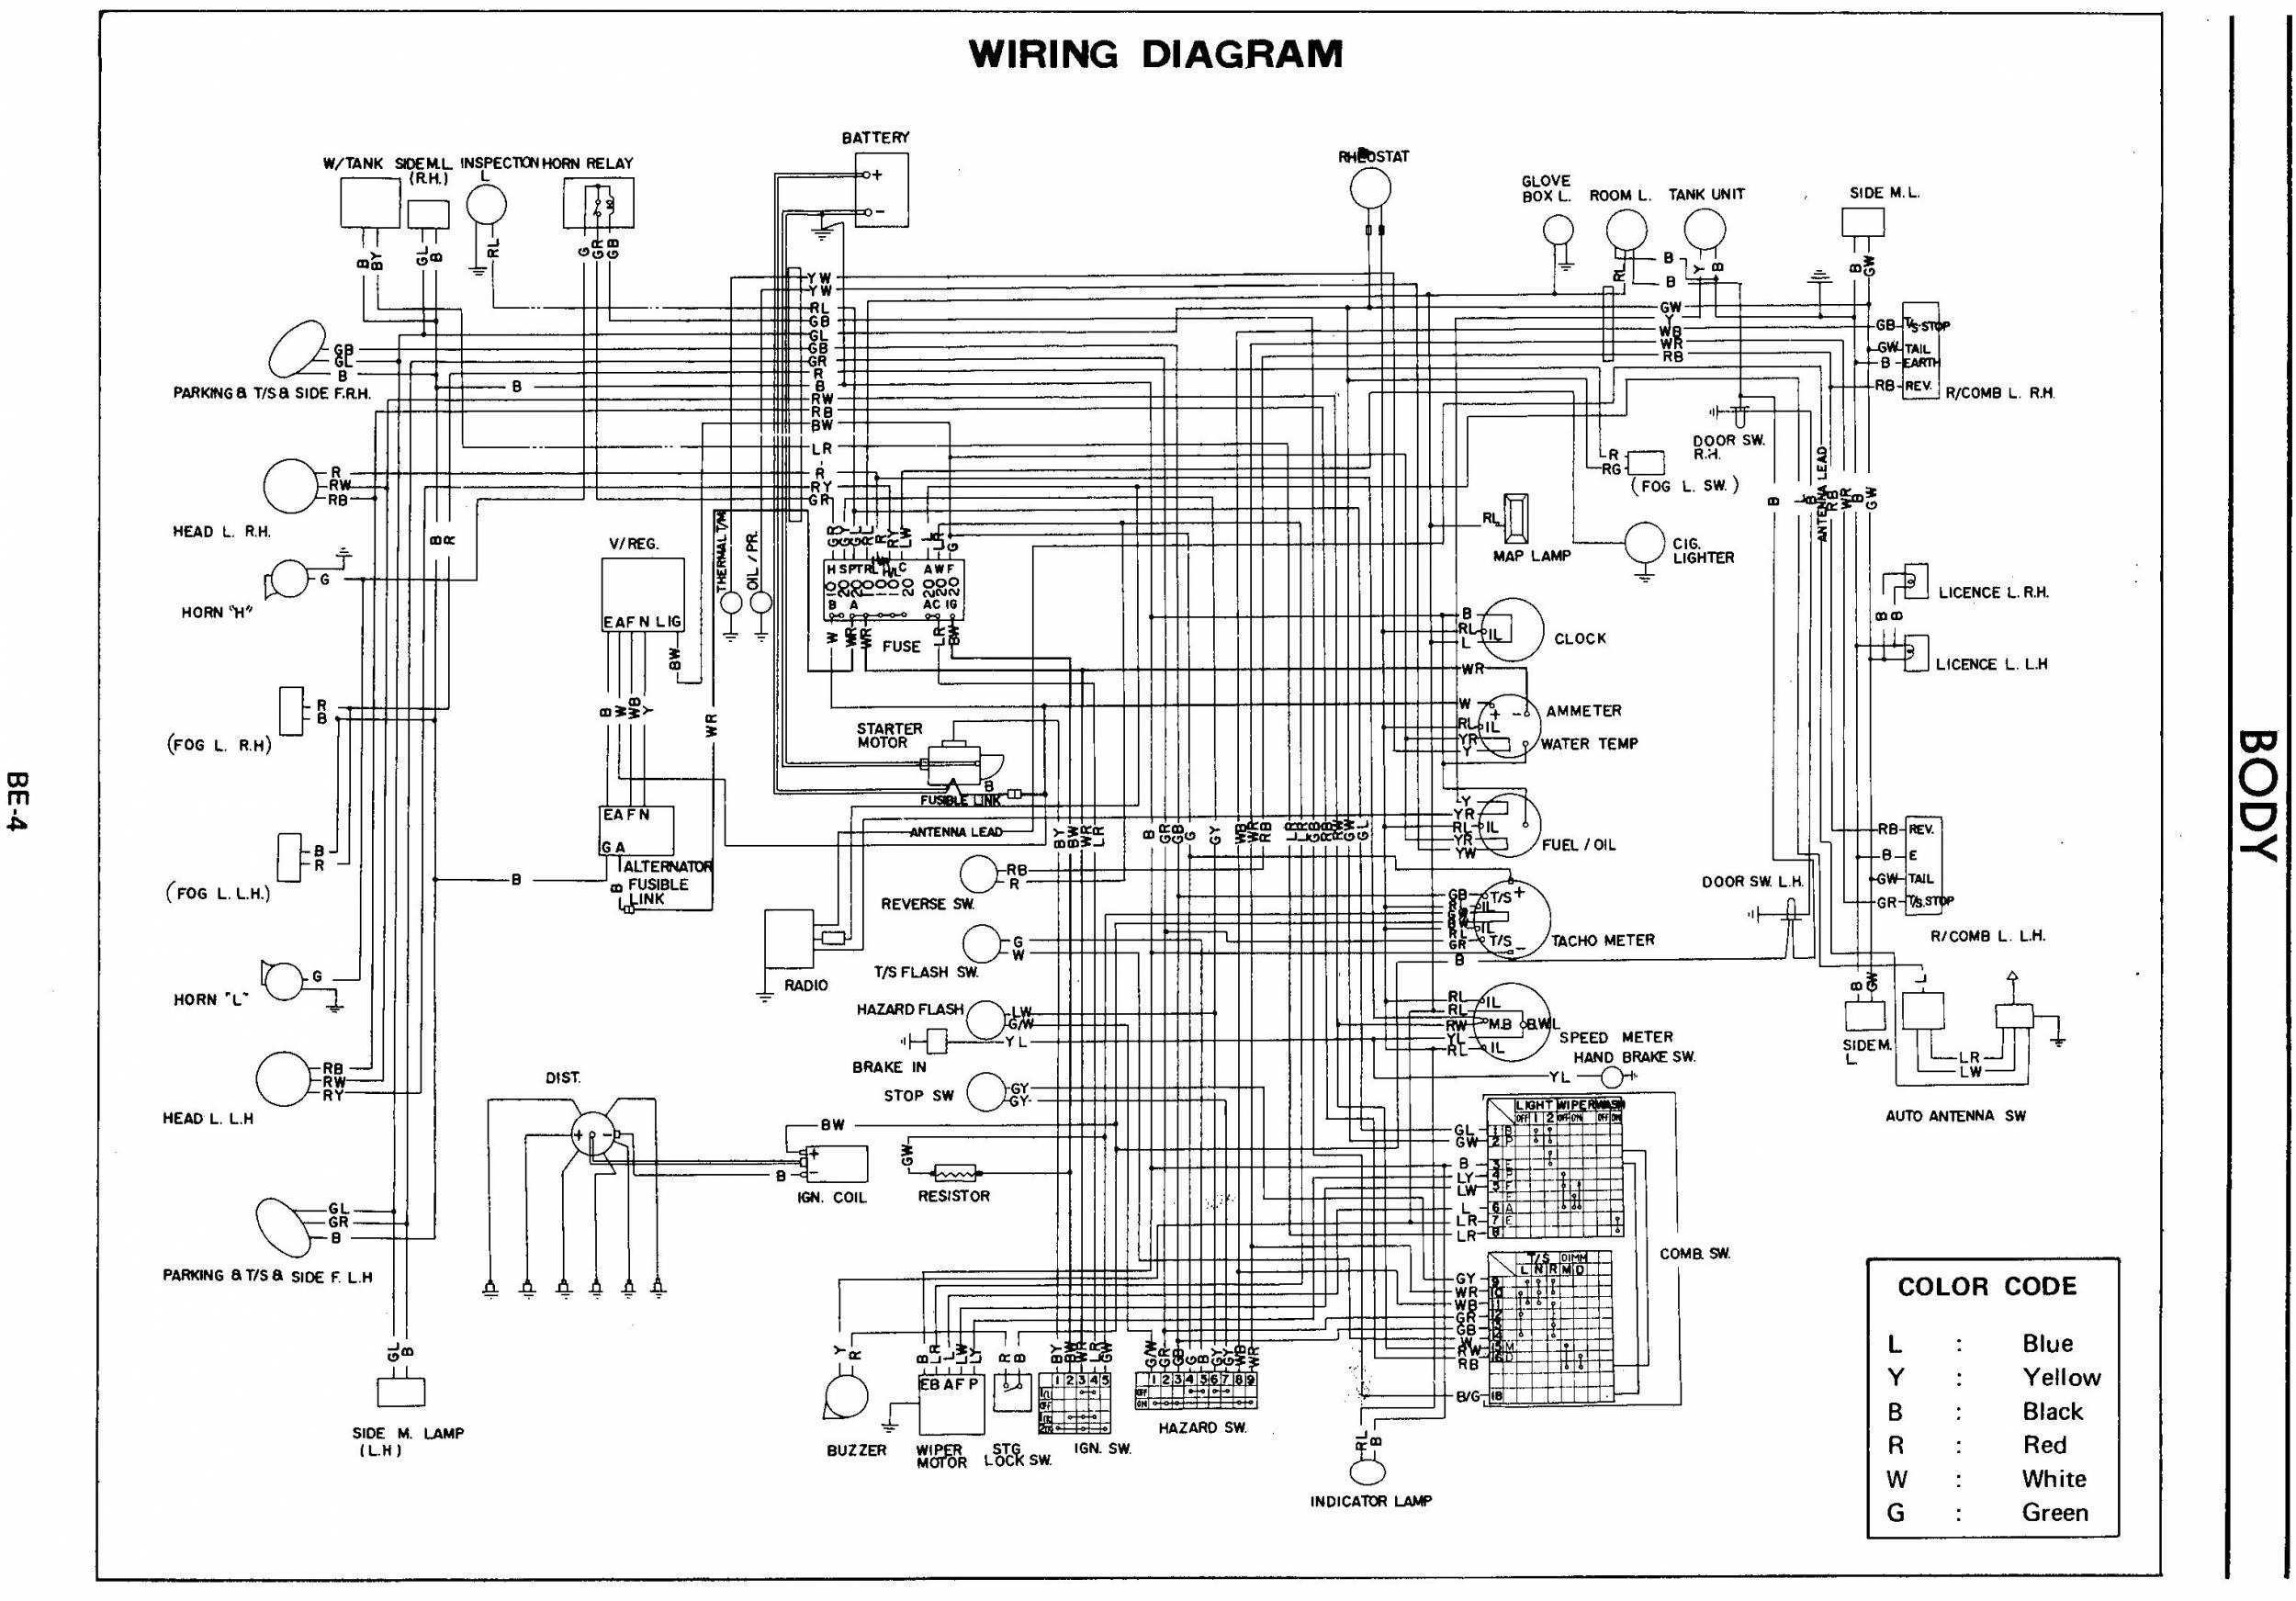 Mercedes W126 Wiring Diagram Wire Data Schema W114 For Benz Fuse Box U2022 Rh Friendsoffido Co